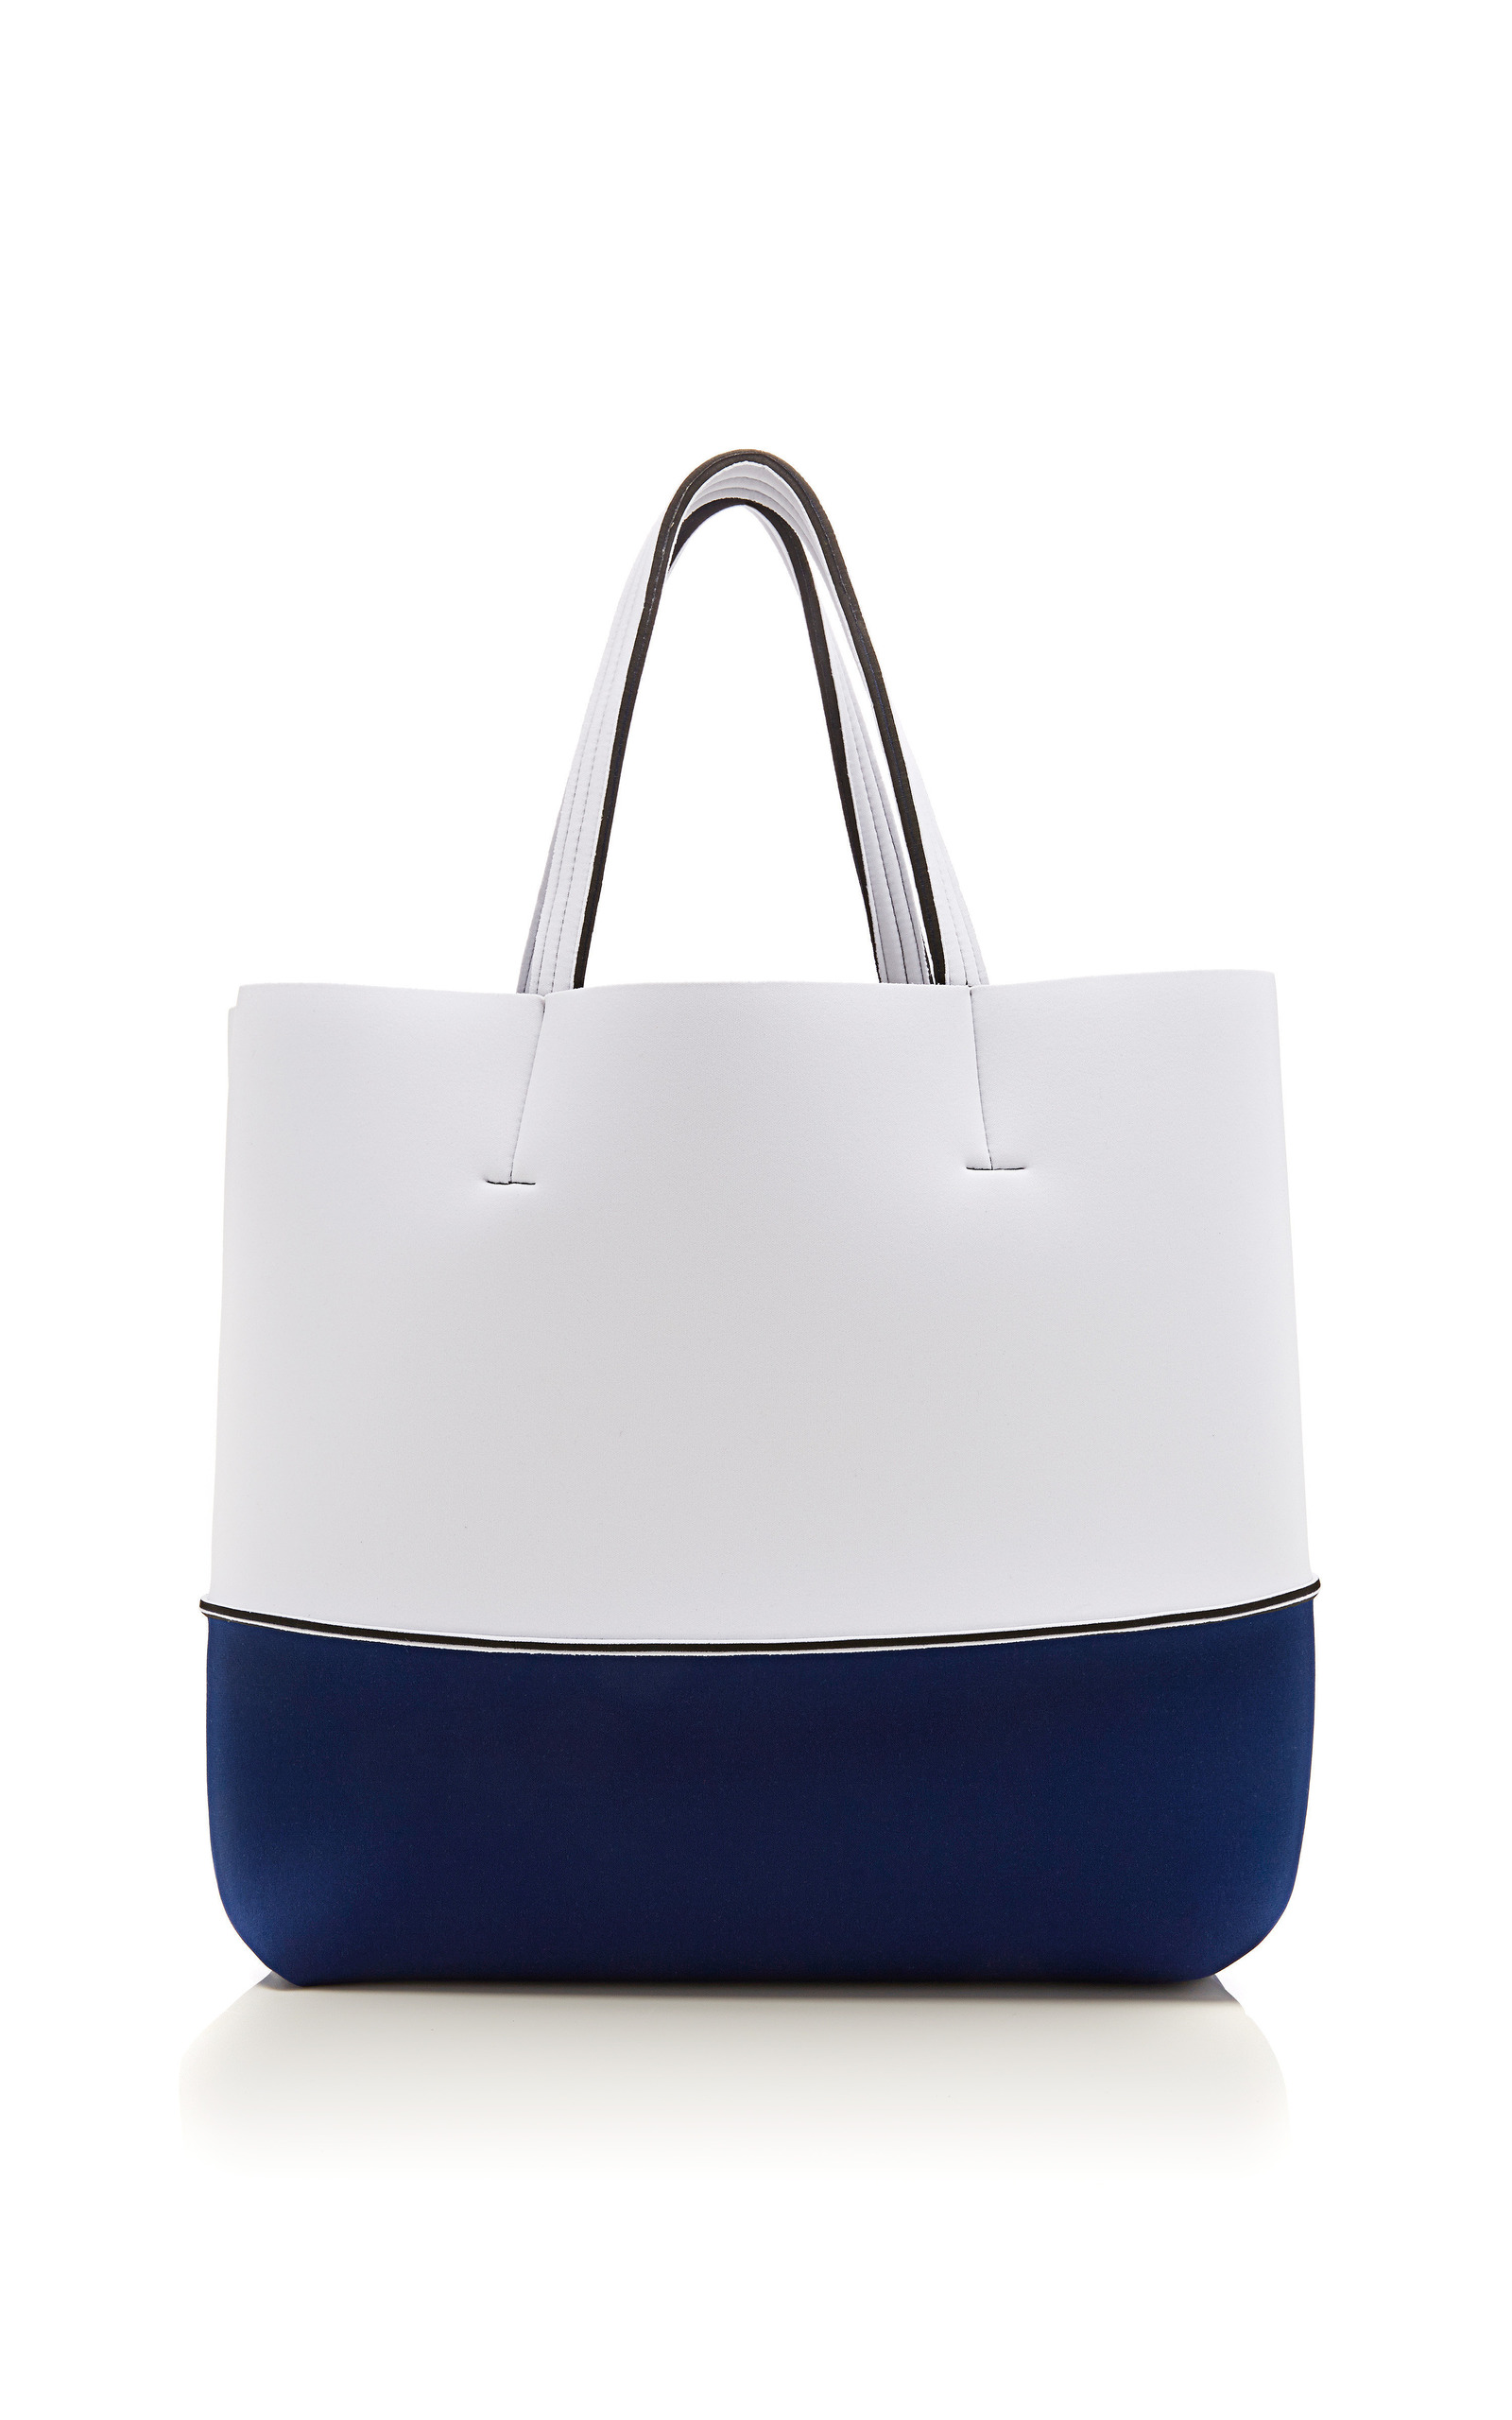 Large Neoprene Beach Bag by Leghila | Moda Operandi